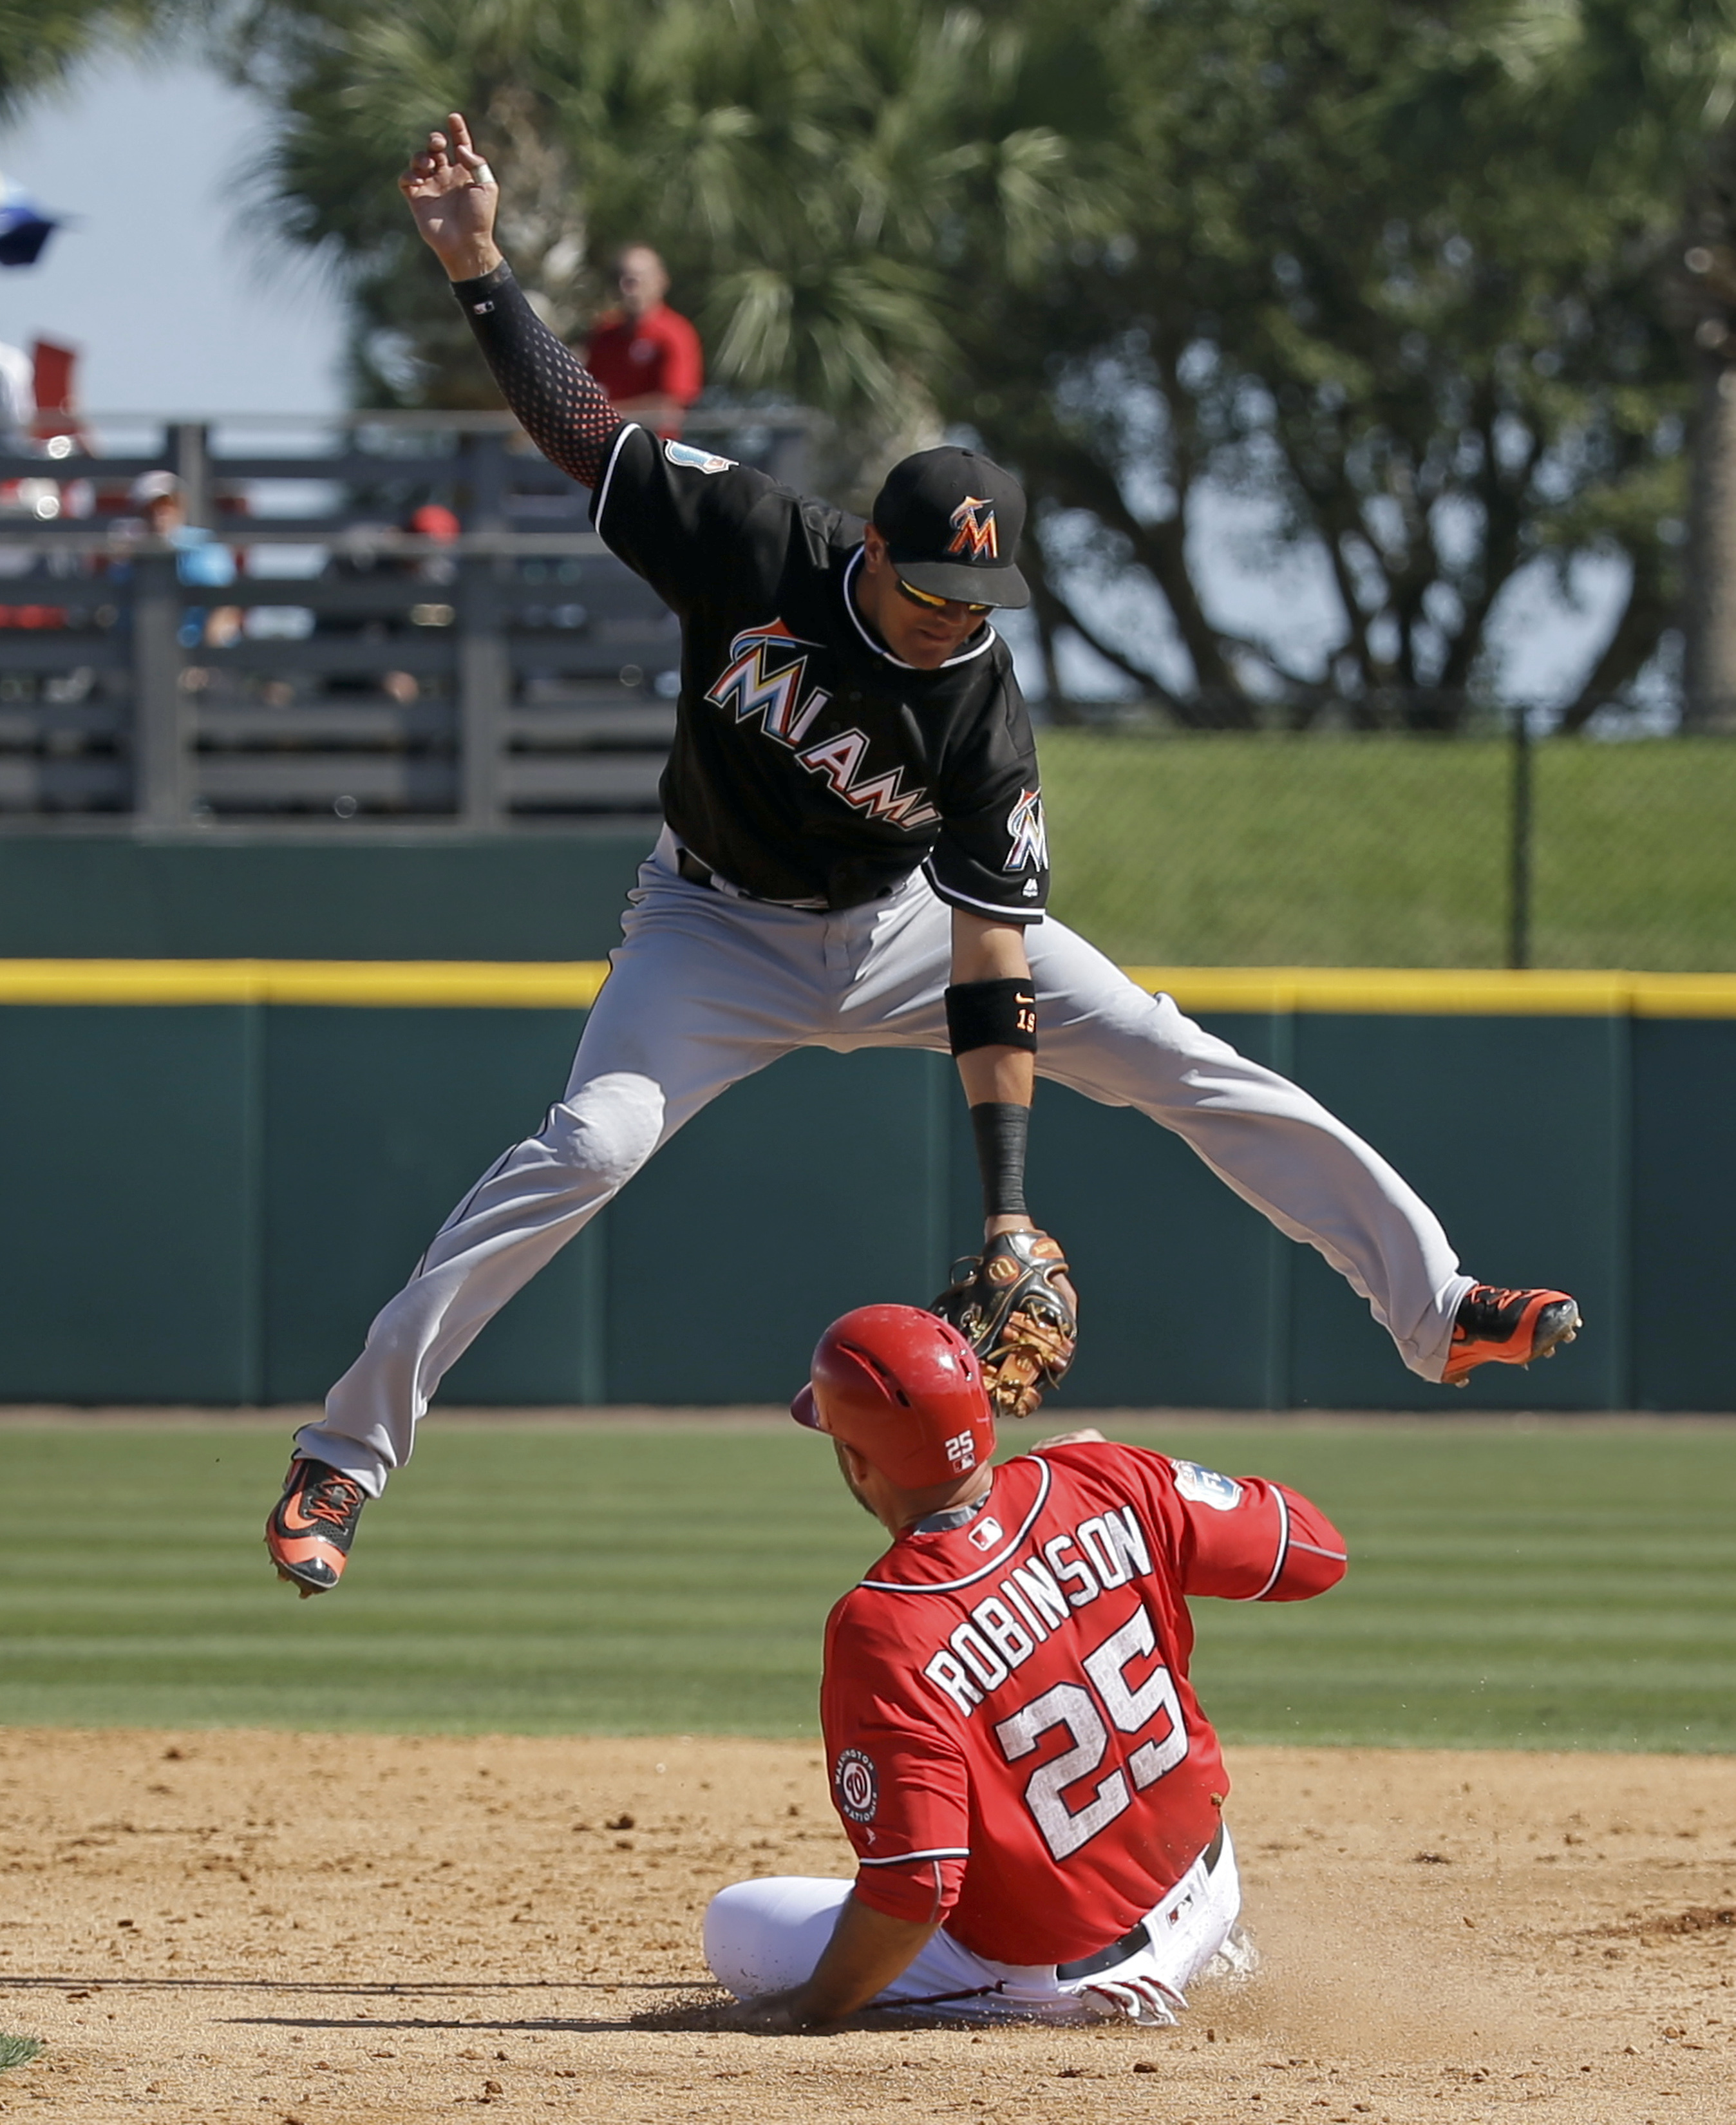 Washington Nationals' Clint Robinson (25) steals second base in the fourth inning as Miami Marlins shortstop Miguel Rojas cannot make the tag due to a high throw from the catcher in a spring training baseball game, Monday, March 7, 2016, in Viera, Fla. (A